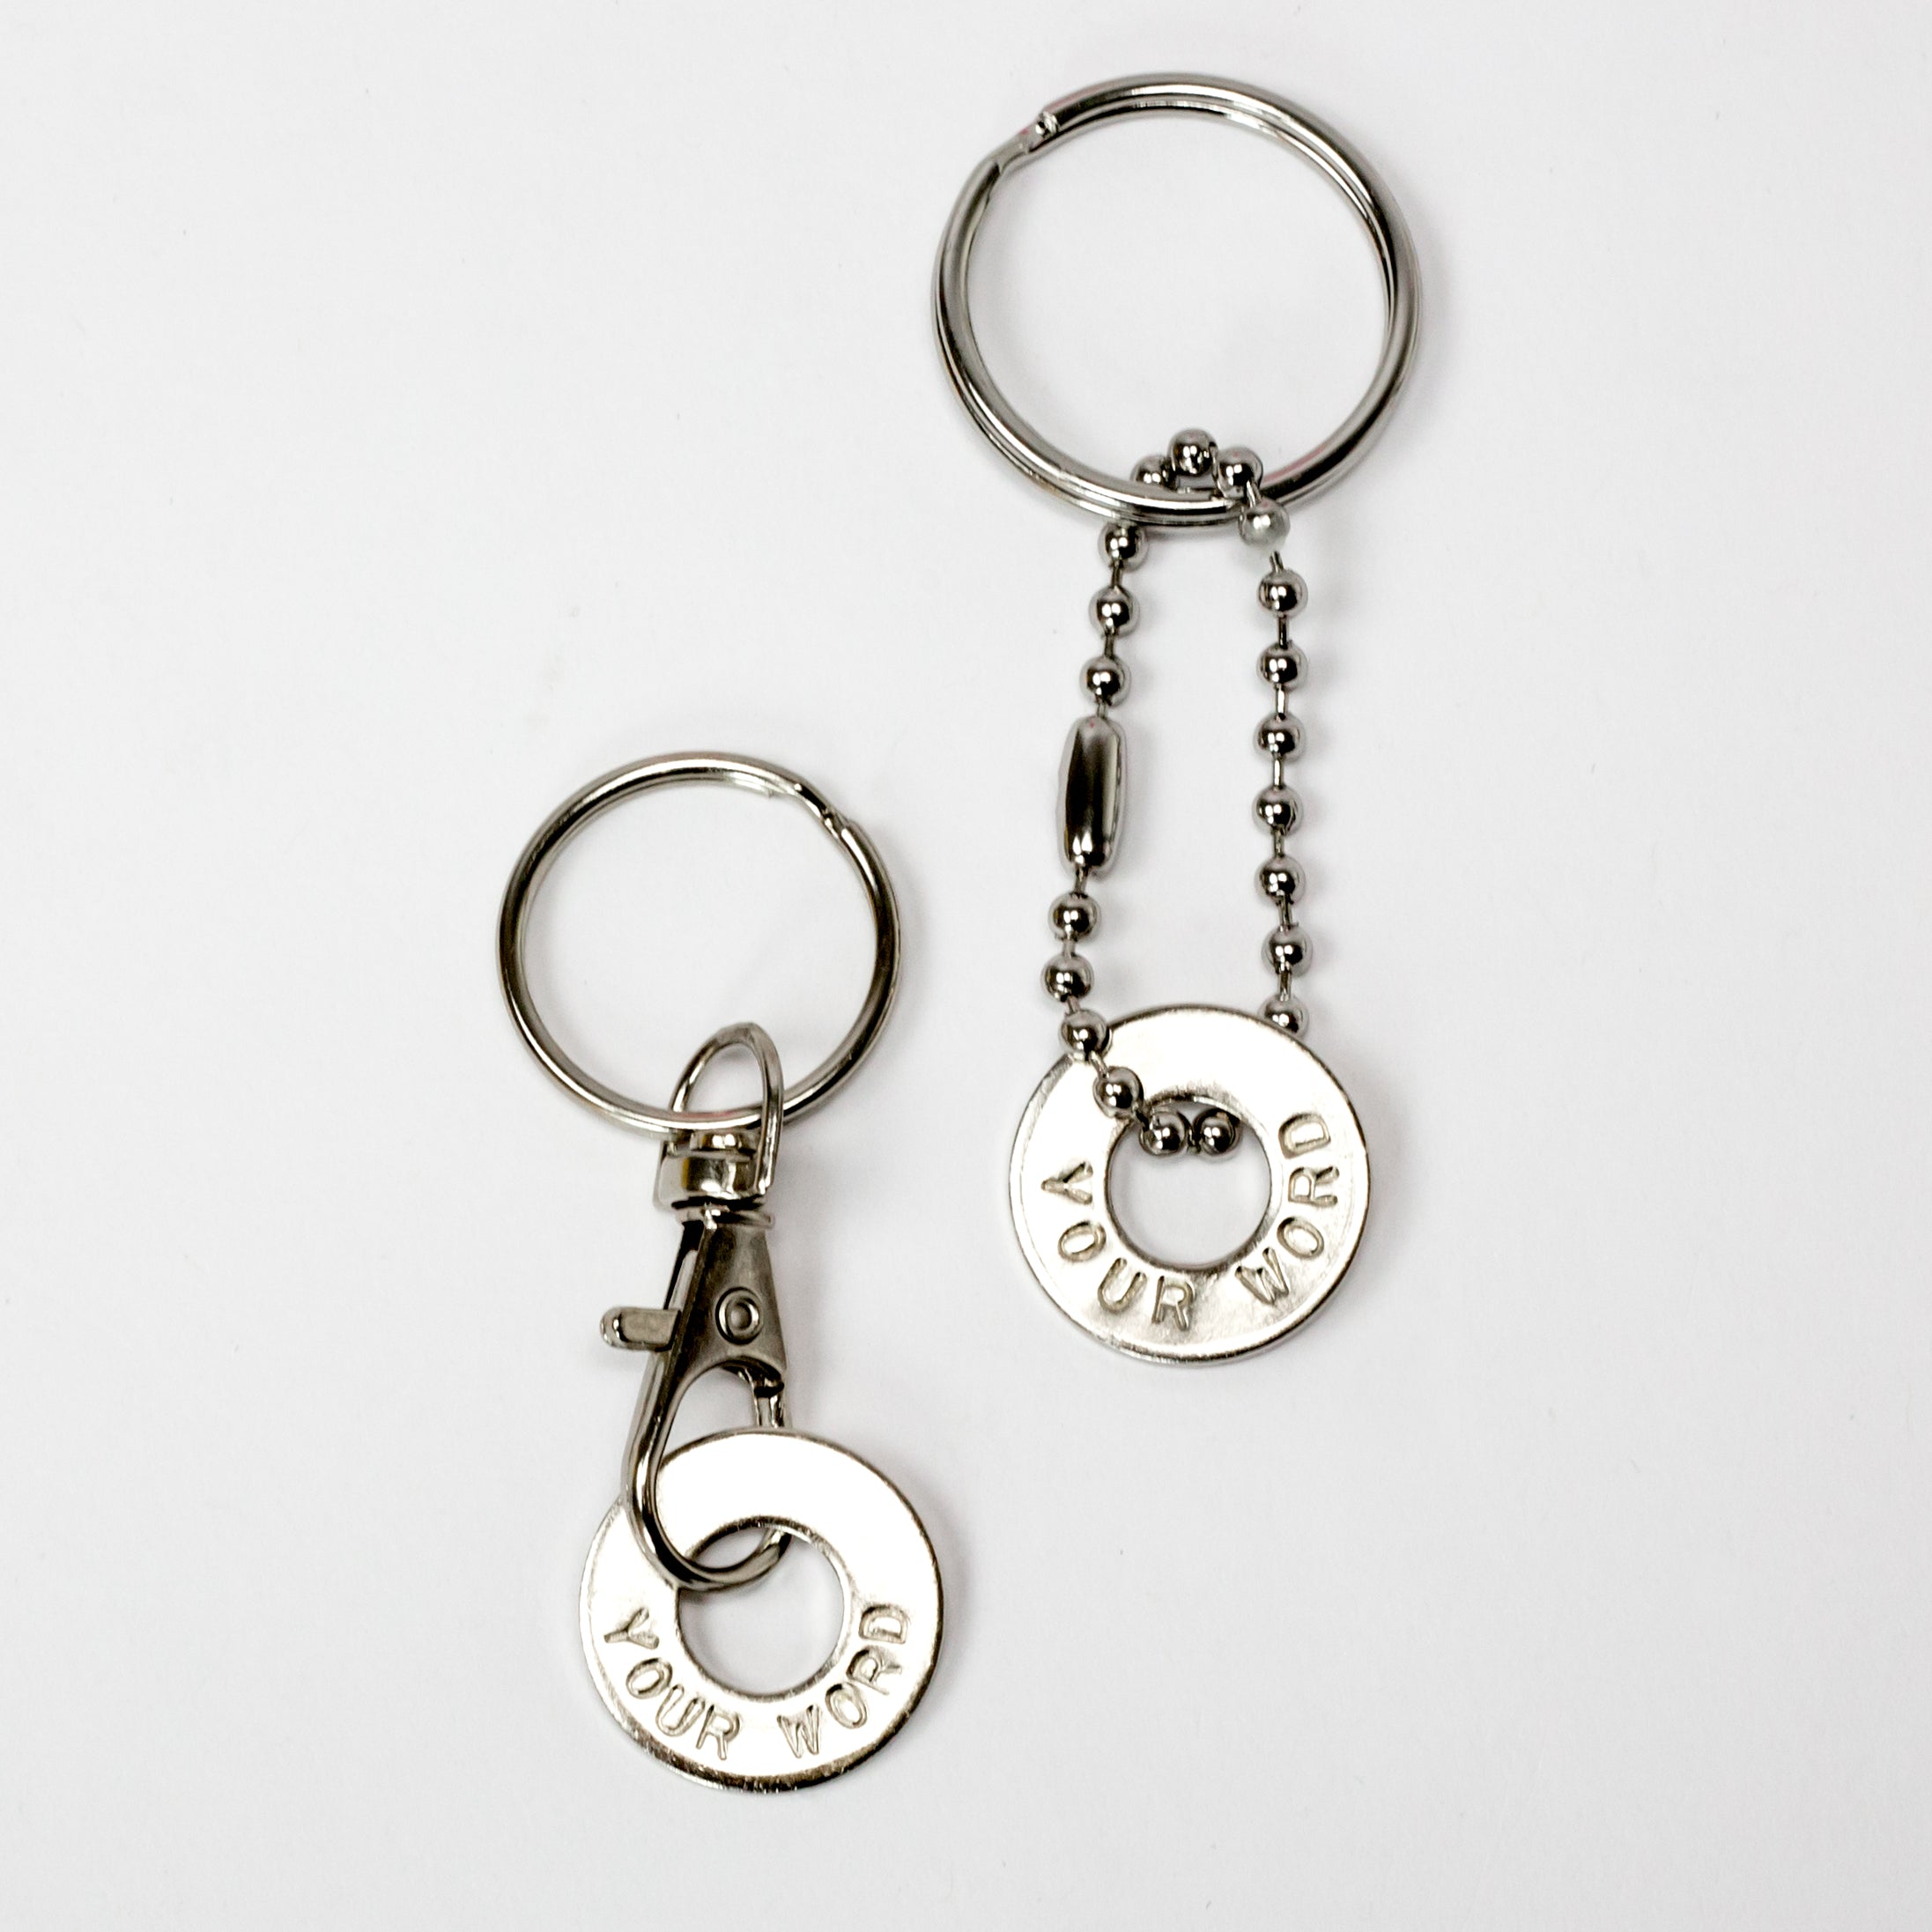 MyIntent Custom Clasp Keychain and Bead Keychain in Nickel